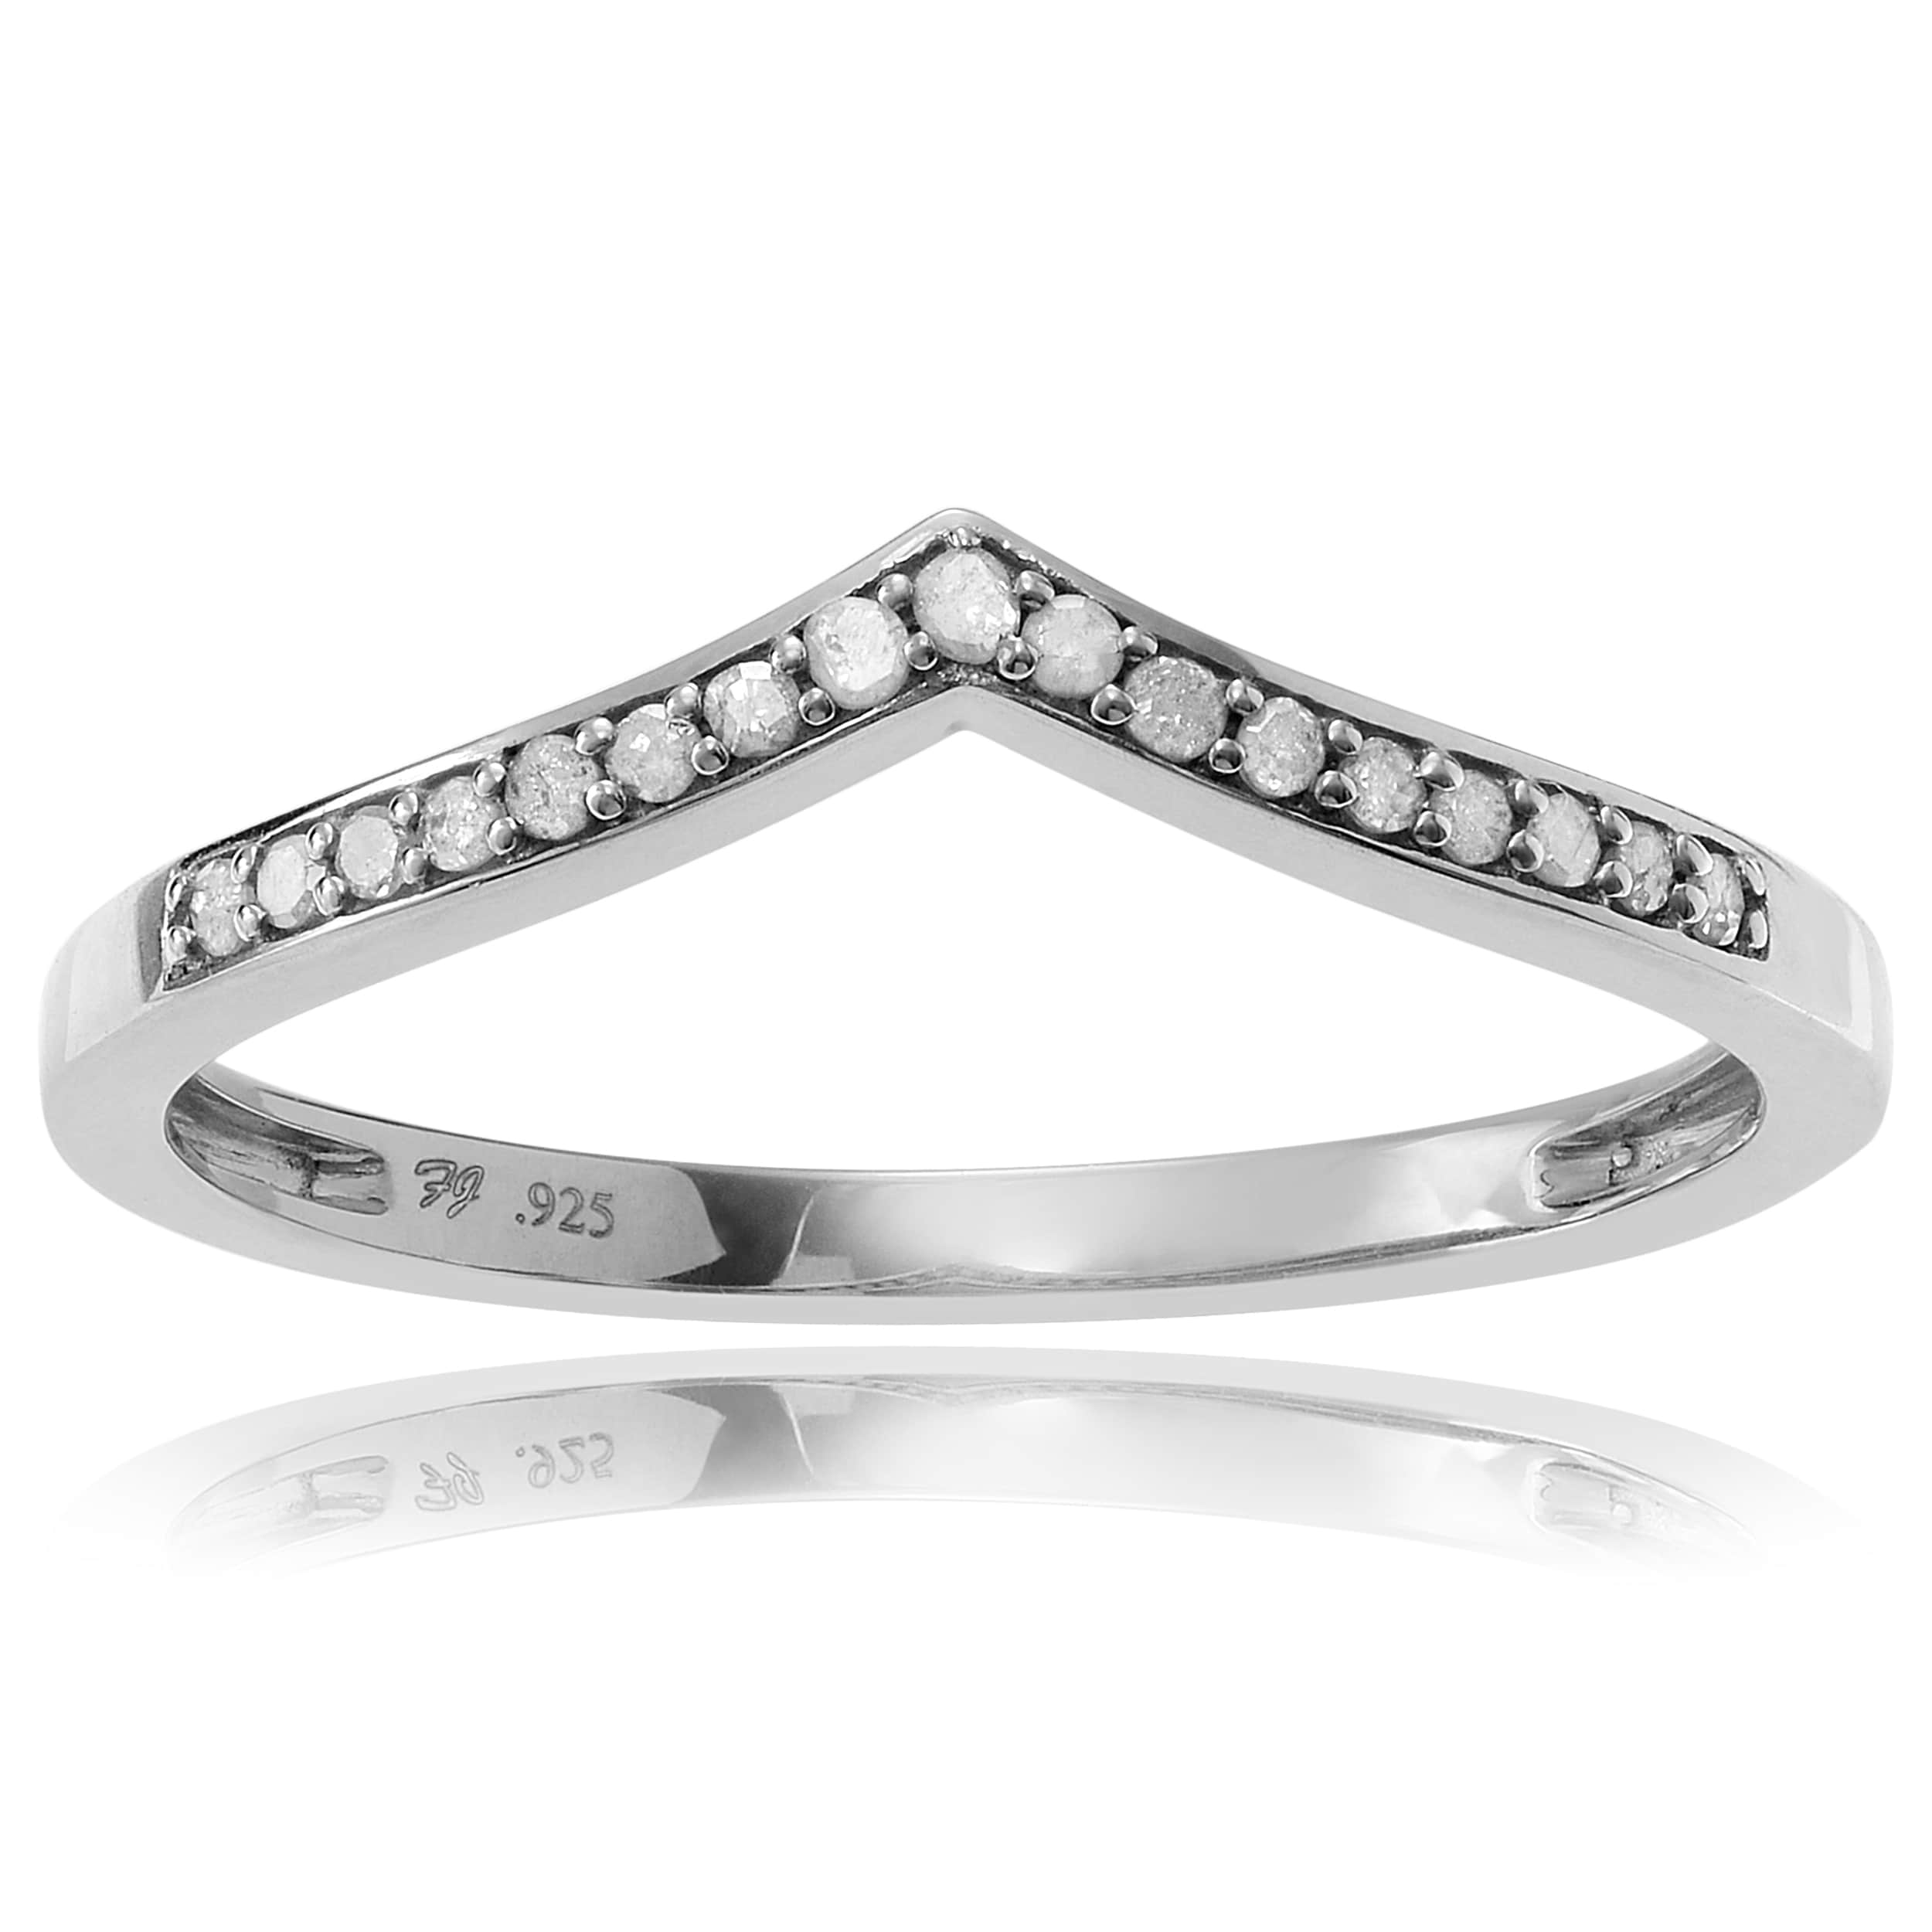 Journee collection Sterling Silver 1/6 ct Diamond Curved ...